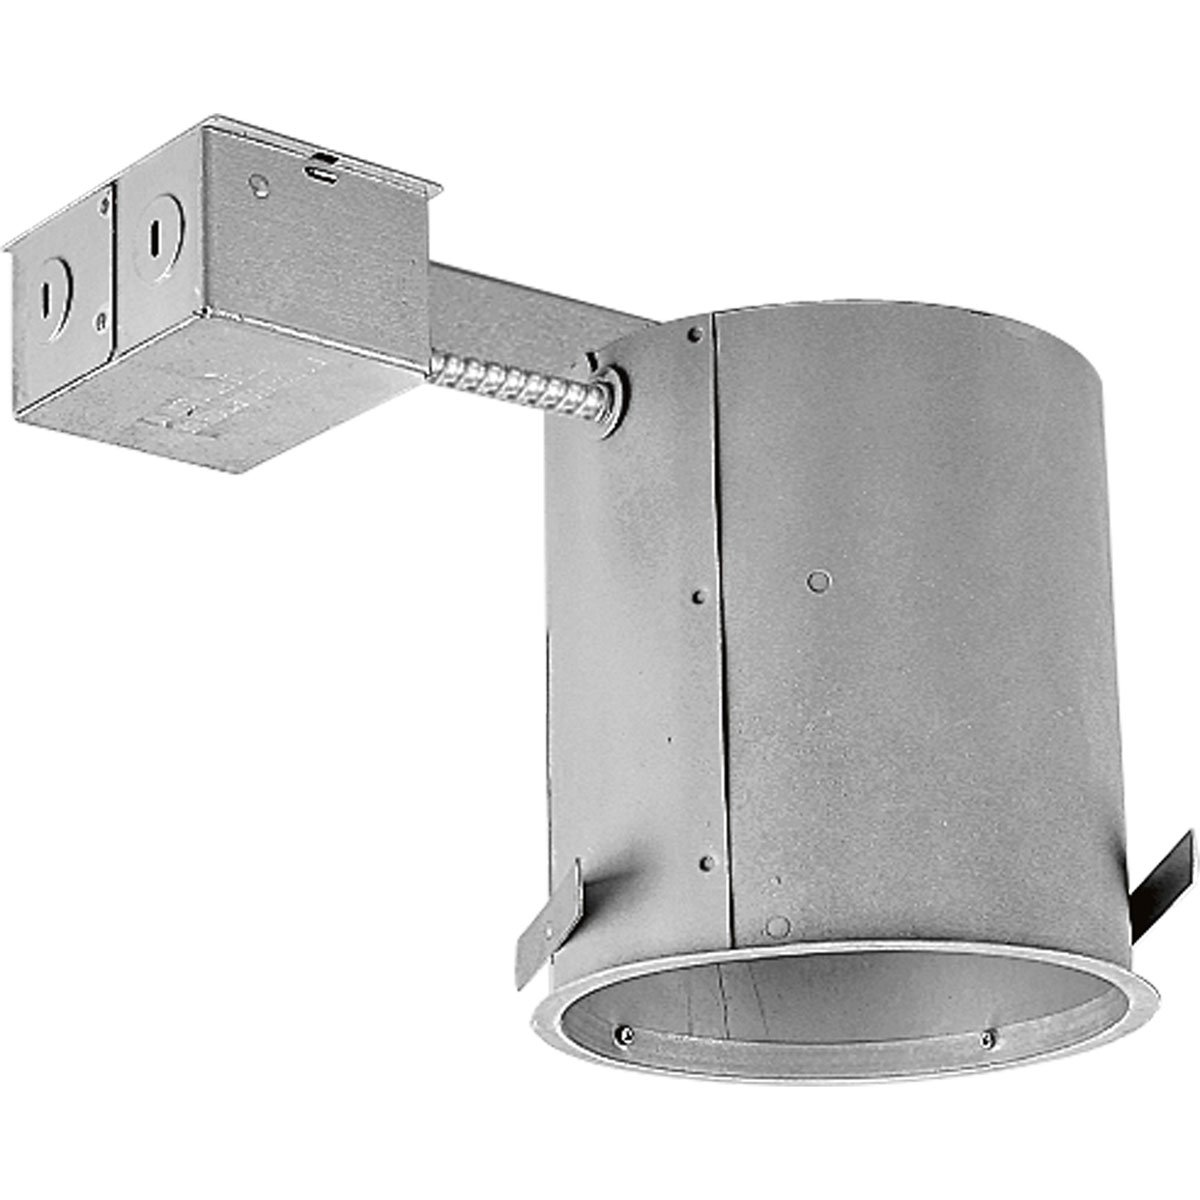 Progress lighting 94187tg0 remodel recessed lighting housing for use progress lighting 94187tg0 remodel recessed lighting housing for use in existing ceilings recessed light fixture housings amazon aloadofball Images